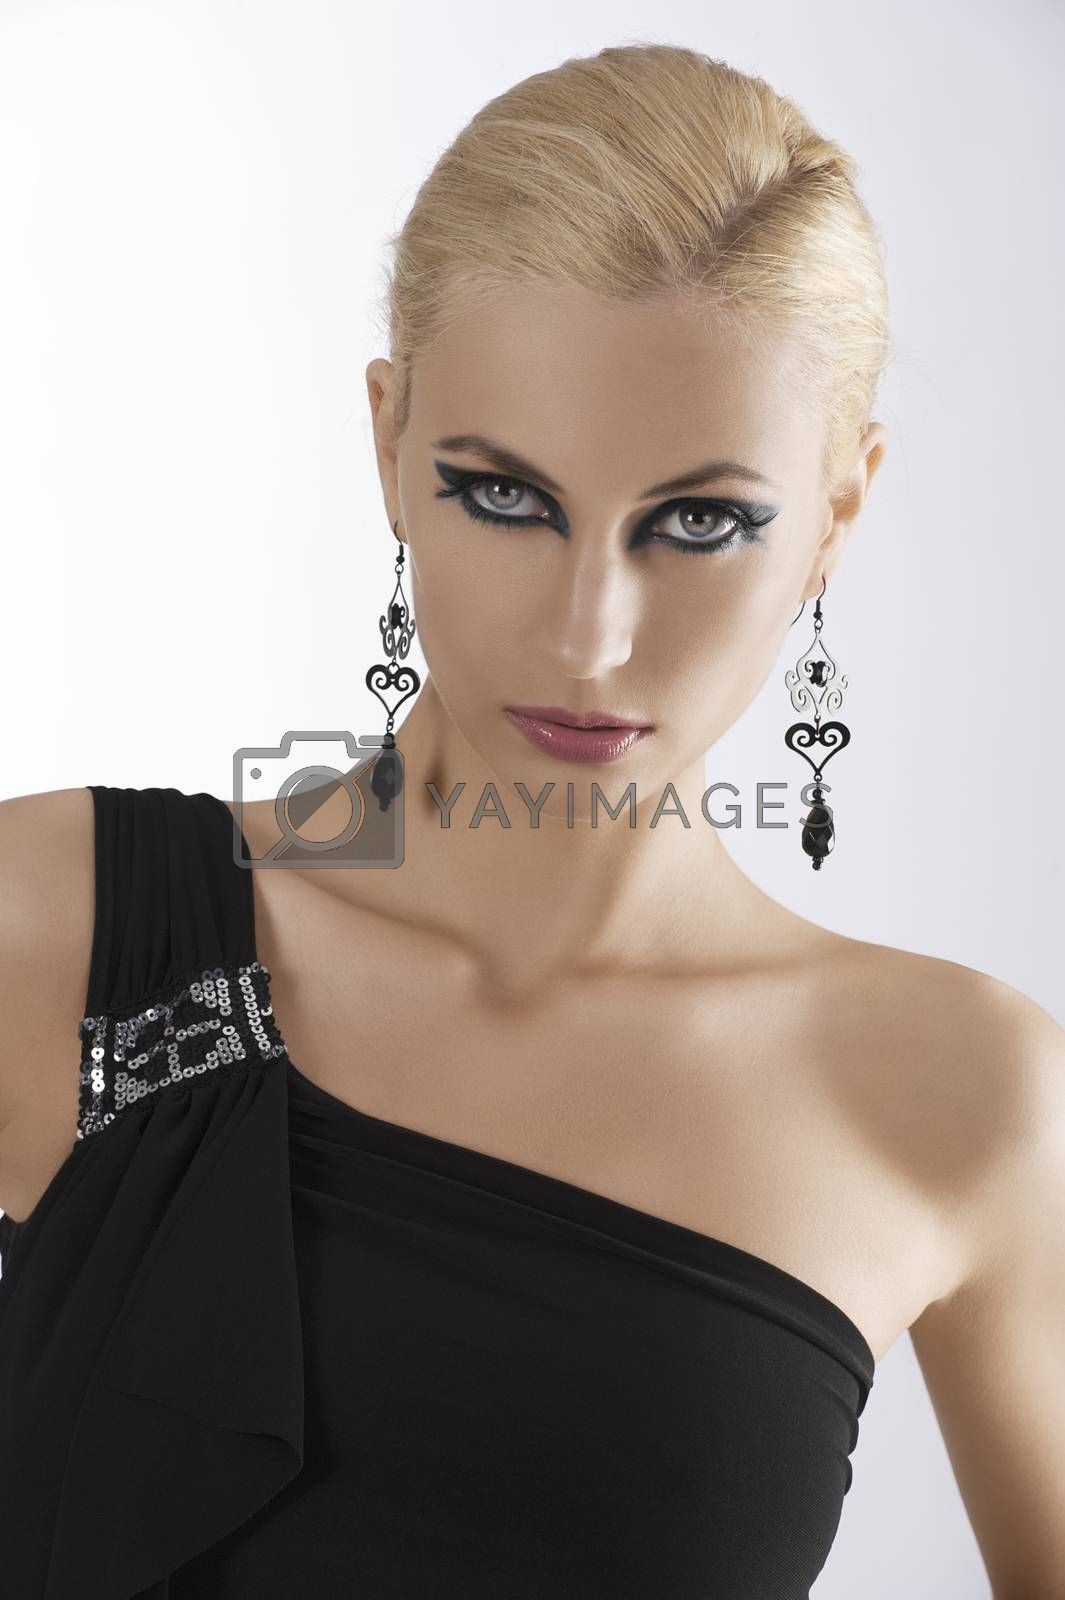 Royalty free image of portrait of blond girl in black dress by fotoCD